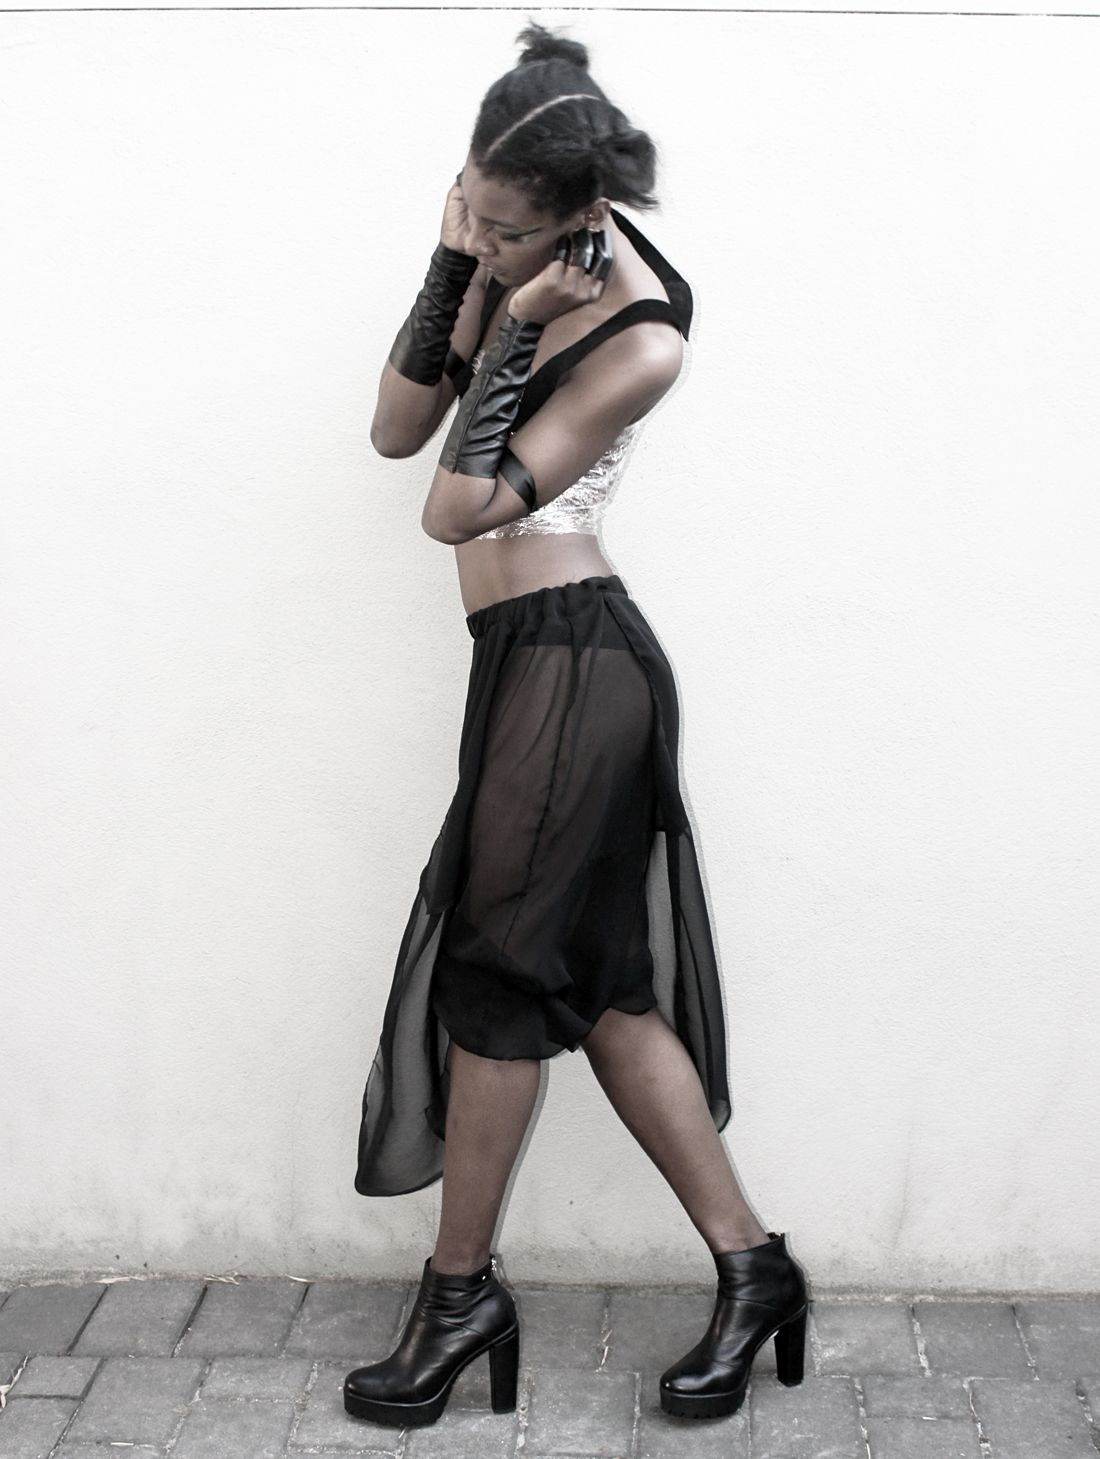 unisex vegan leather jewelry + organza harem pants with aprons